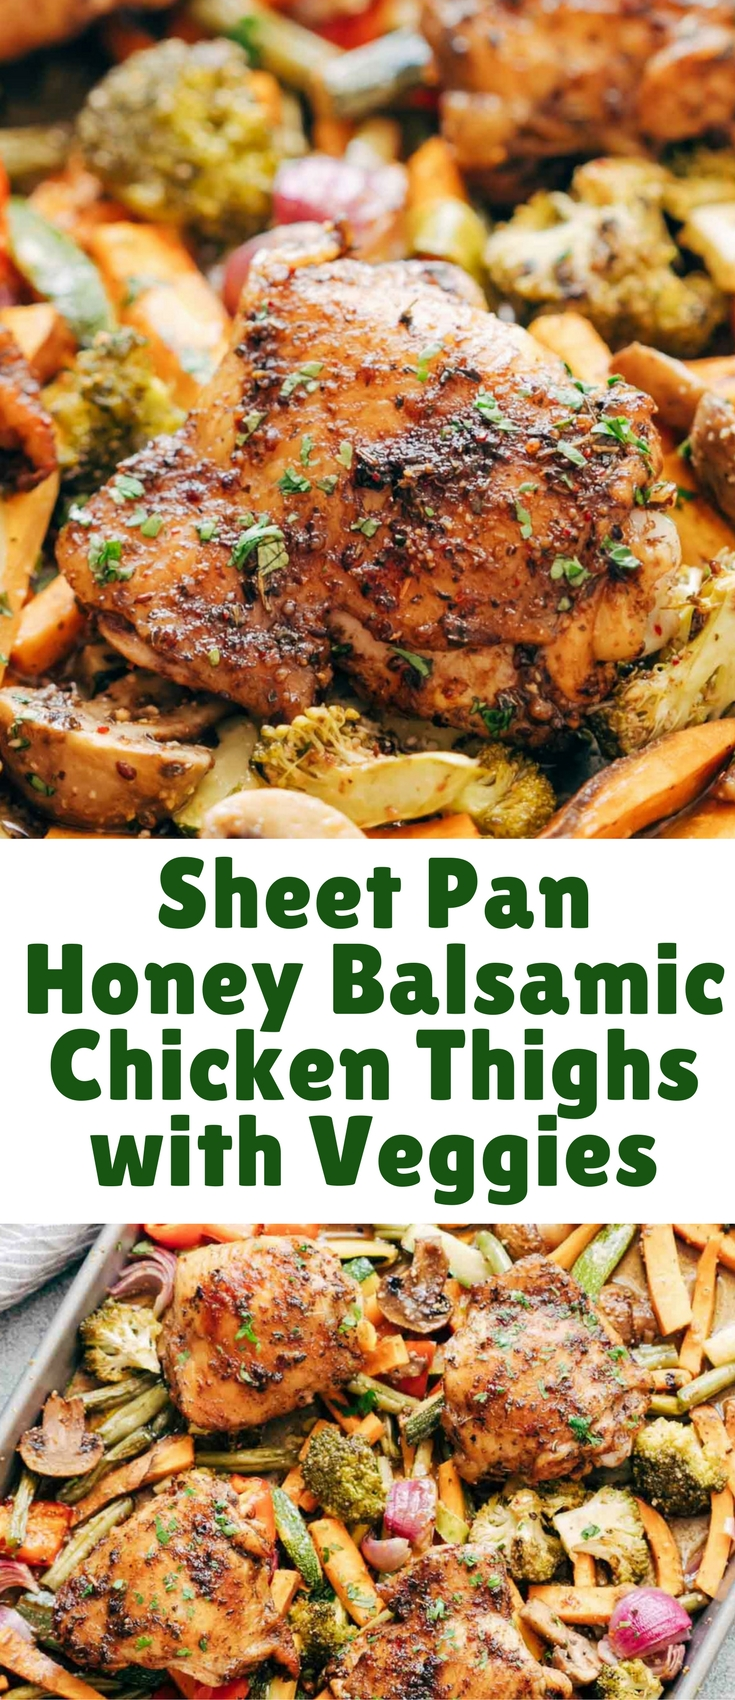 Sheet Pan Honey Balsamic Chicken Thighs with Veggies is the perfect way to get dinner on the table fast! Everything comes together in one sheet pan and is baked till the chicken is crispy and golden with a finger licking honey balsamic marinade.